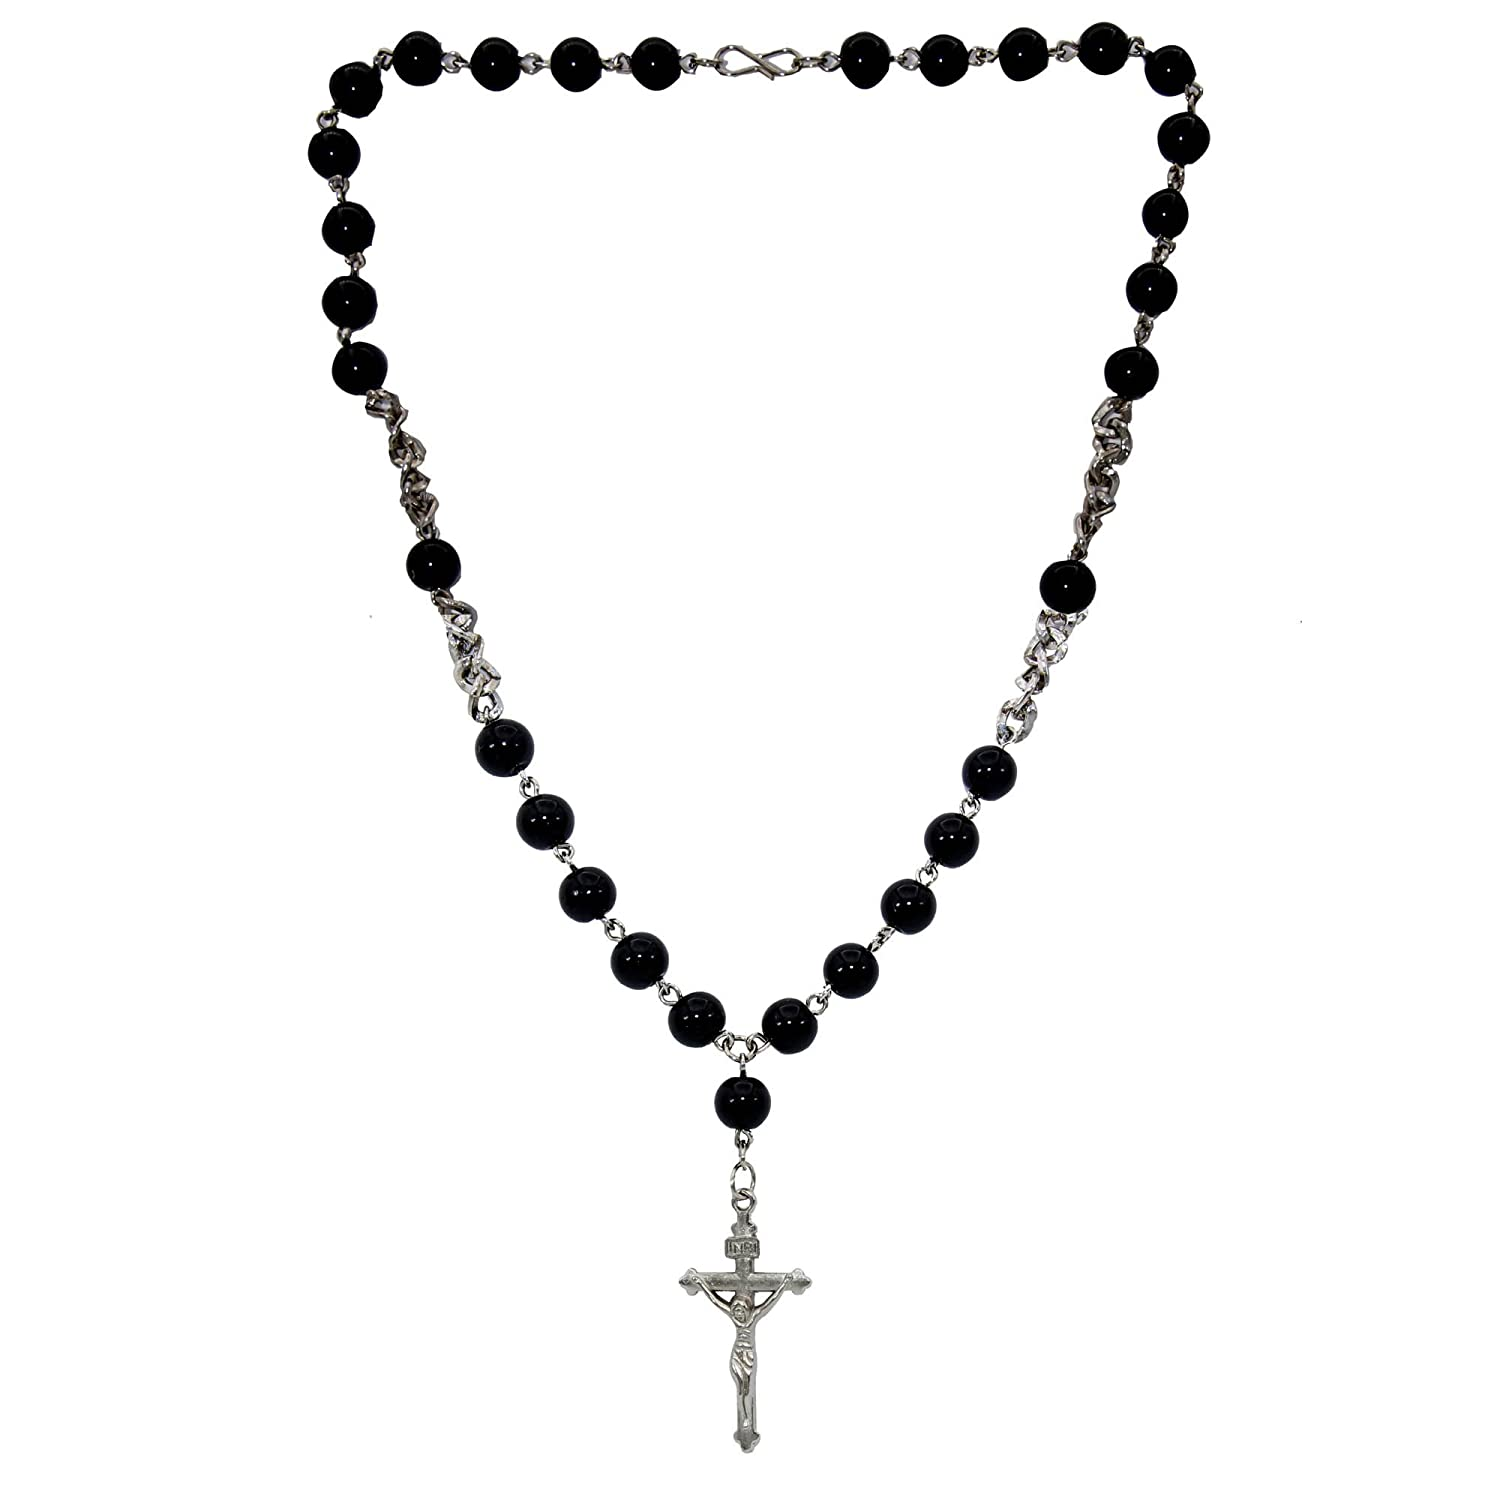 hero s msmh saint lord lords my cottage prayer necklace products the